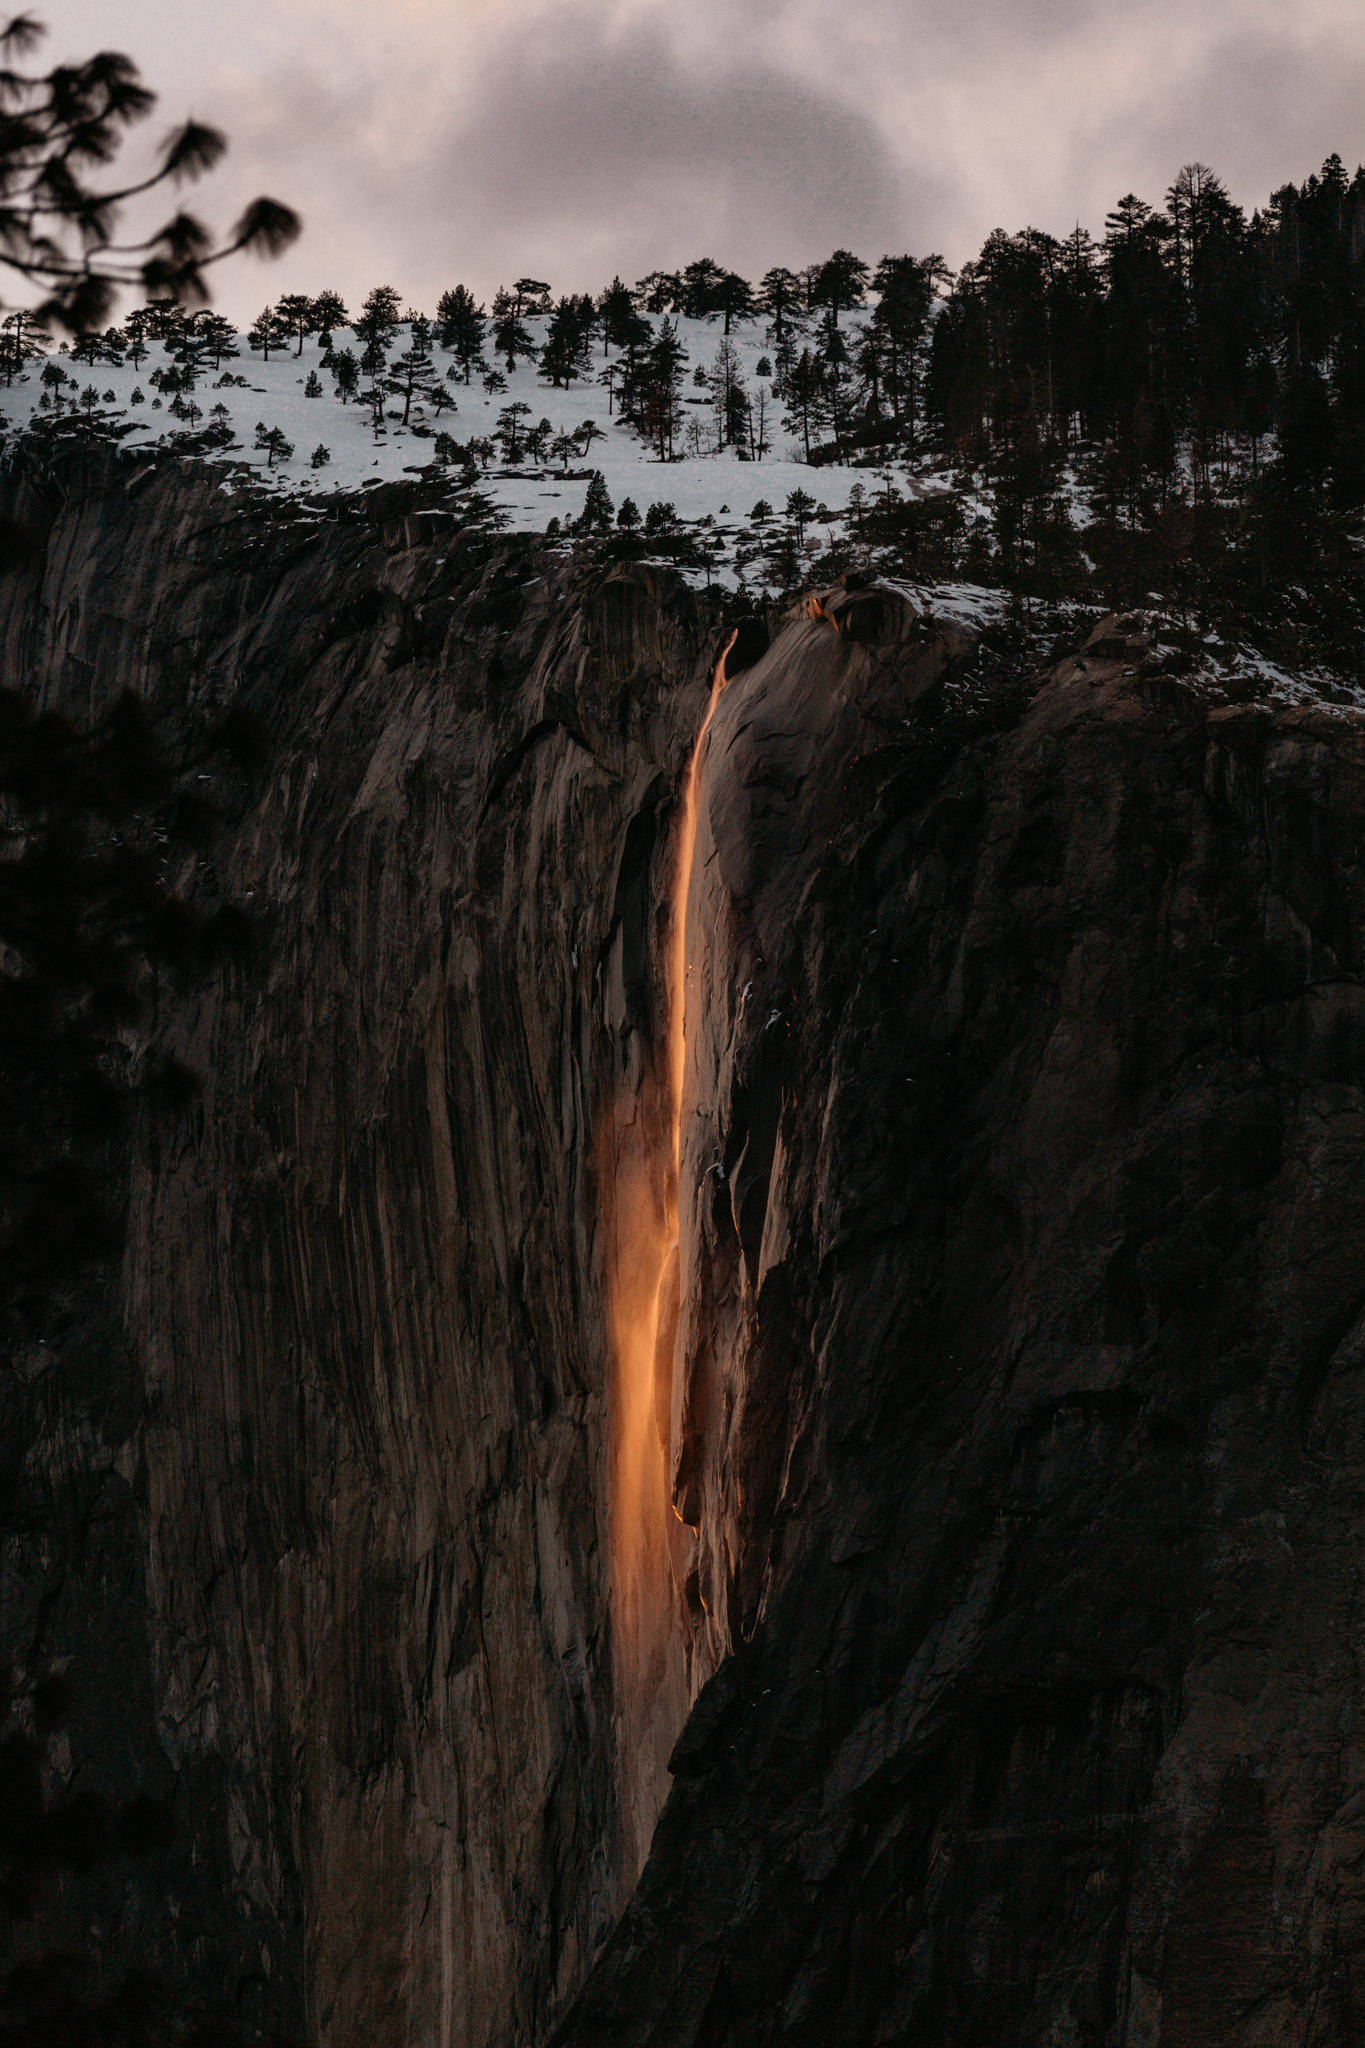 Firefall at Horsetail fall in Yosemite by Paige Nelson